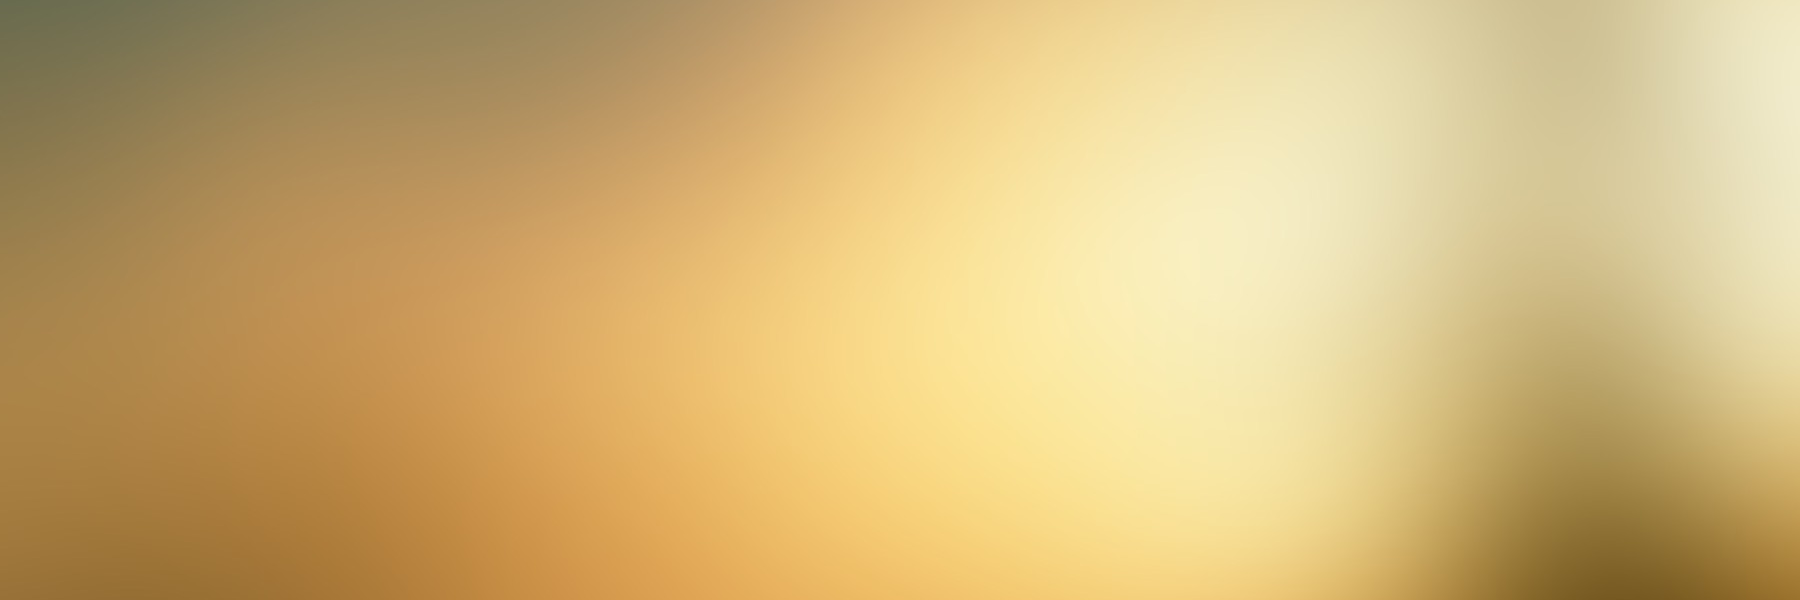 trails2tales_mobile_background_1800x600